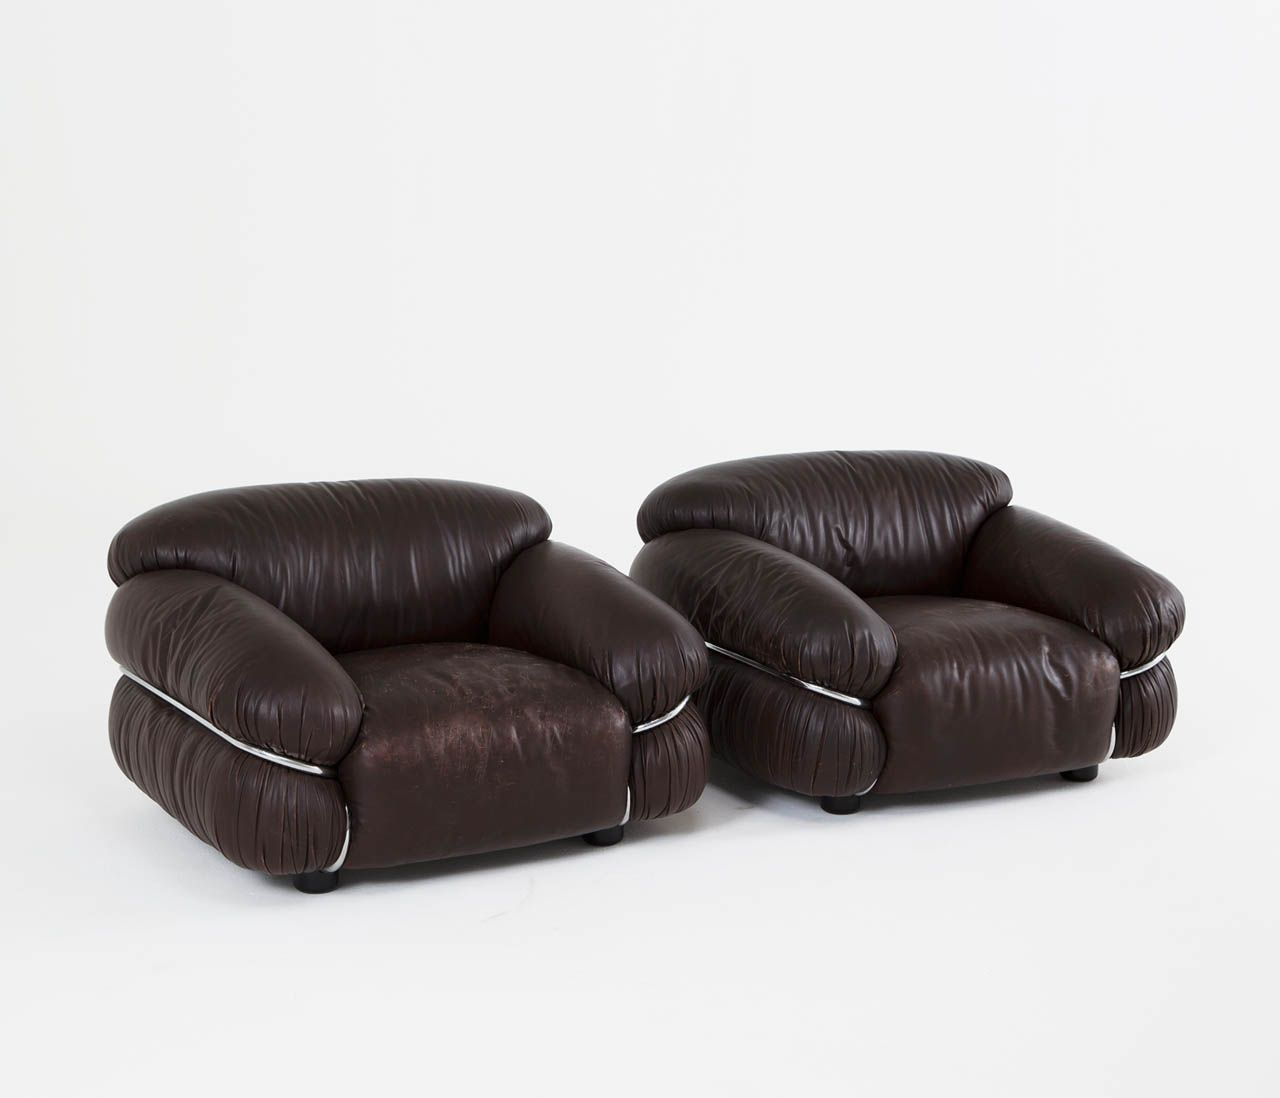 Pin By Brian Gennett On Seating In 2019 Chair Furniture